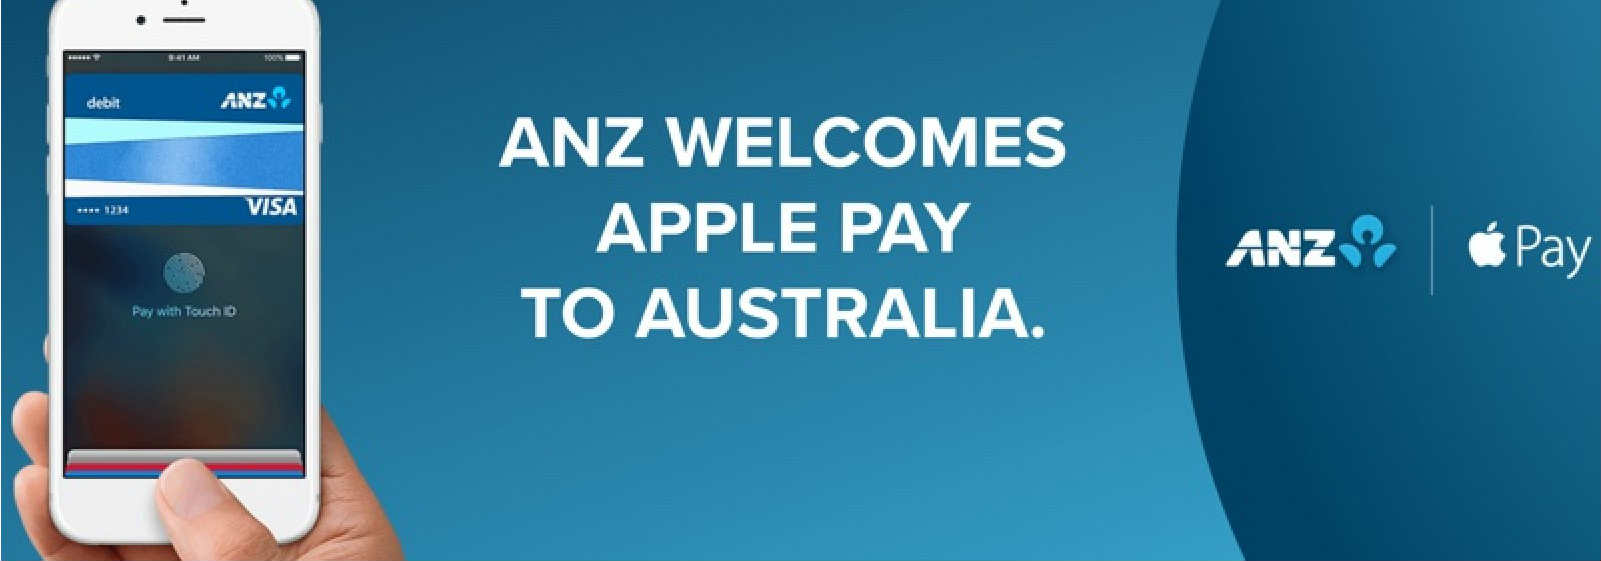 How To Use Apple Pay In Australia: ANZ Welcomes Apple Pay   Canstar